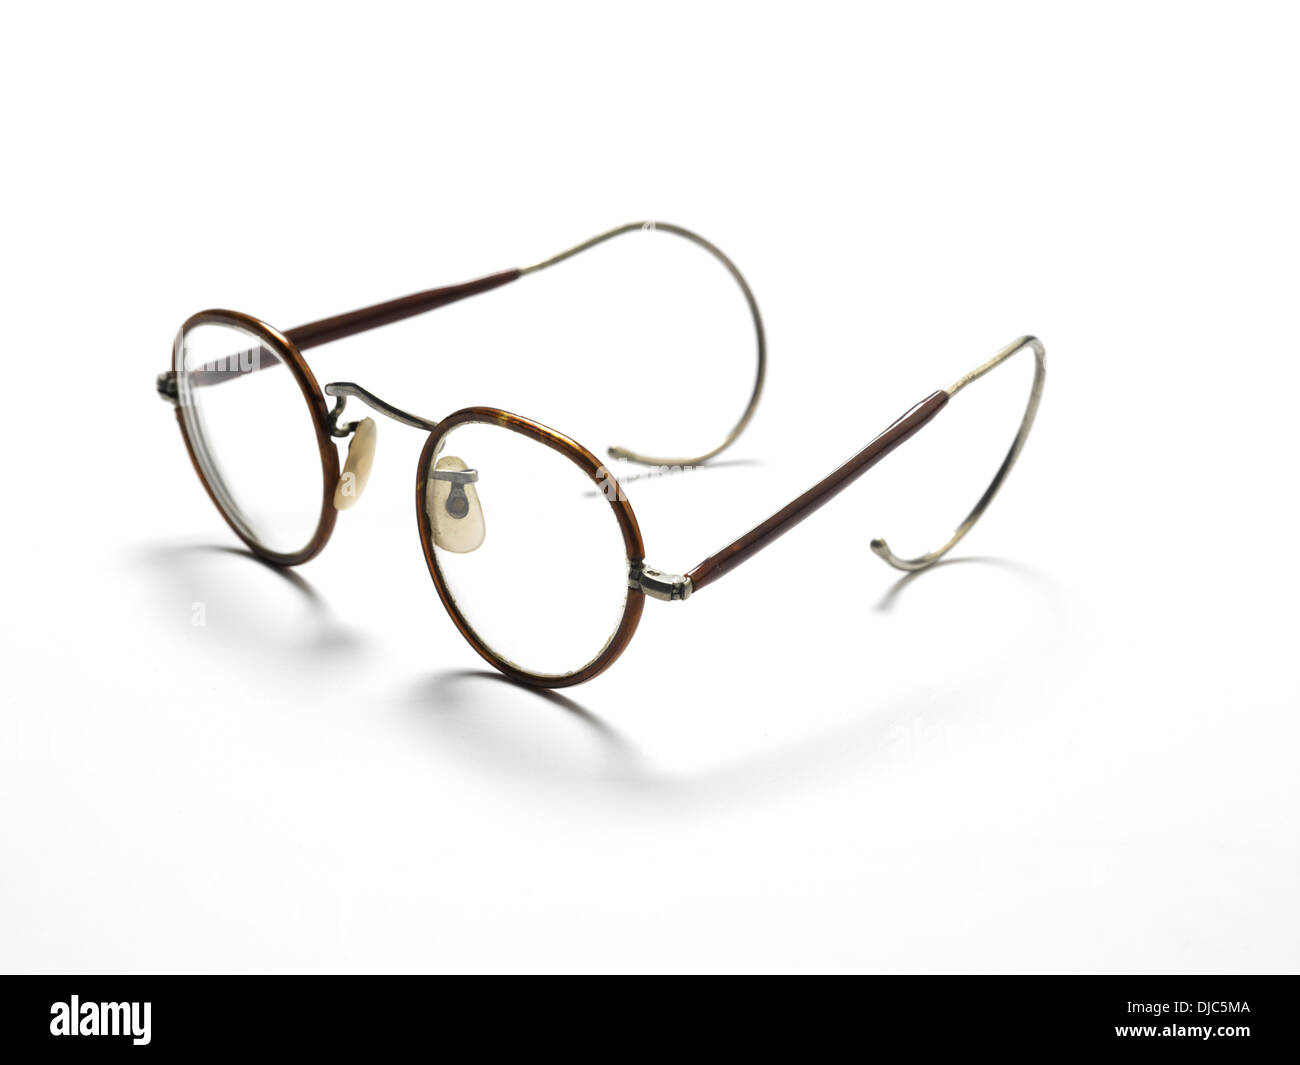 Pair of old fashioned glasses with wire frames Stock Photo: 62962826 ...